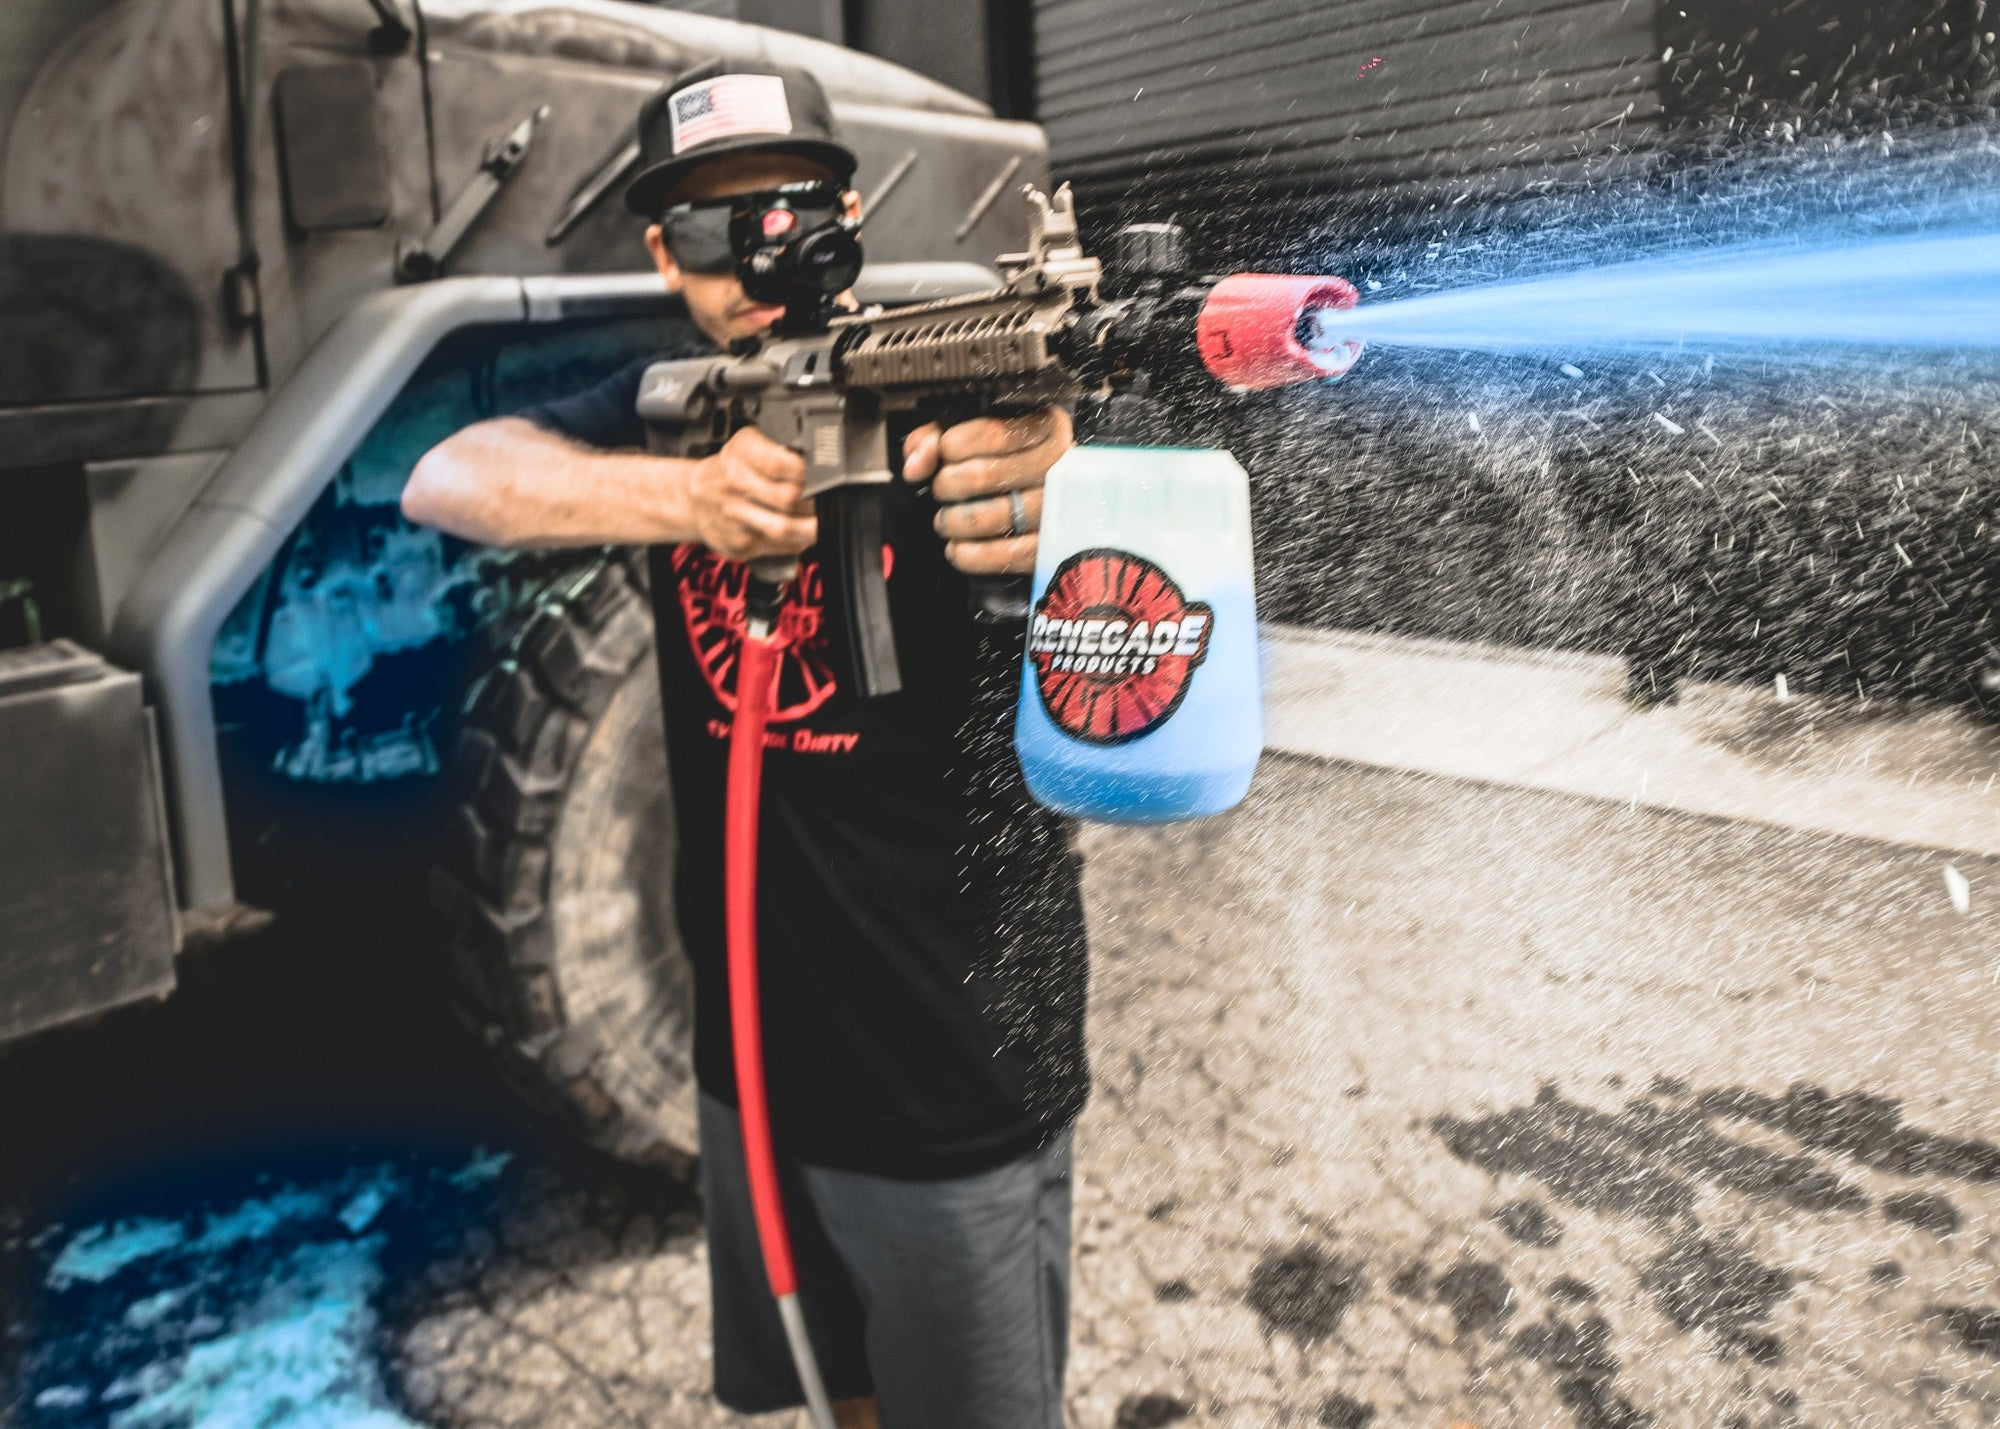 -AR foam cannon  -Renegade foam cannon attachment  -2 bottles of neon foam suds from Renegade Products  Attachments that are included  -Air-soft sniper scope with red dot  -Rail hand grip